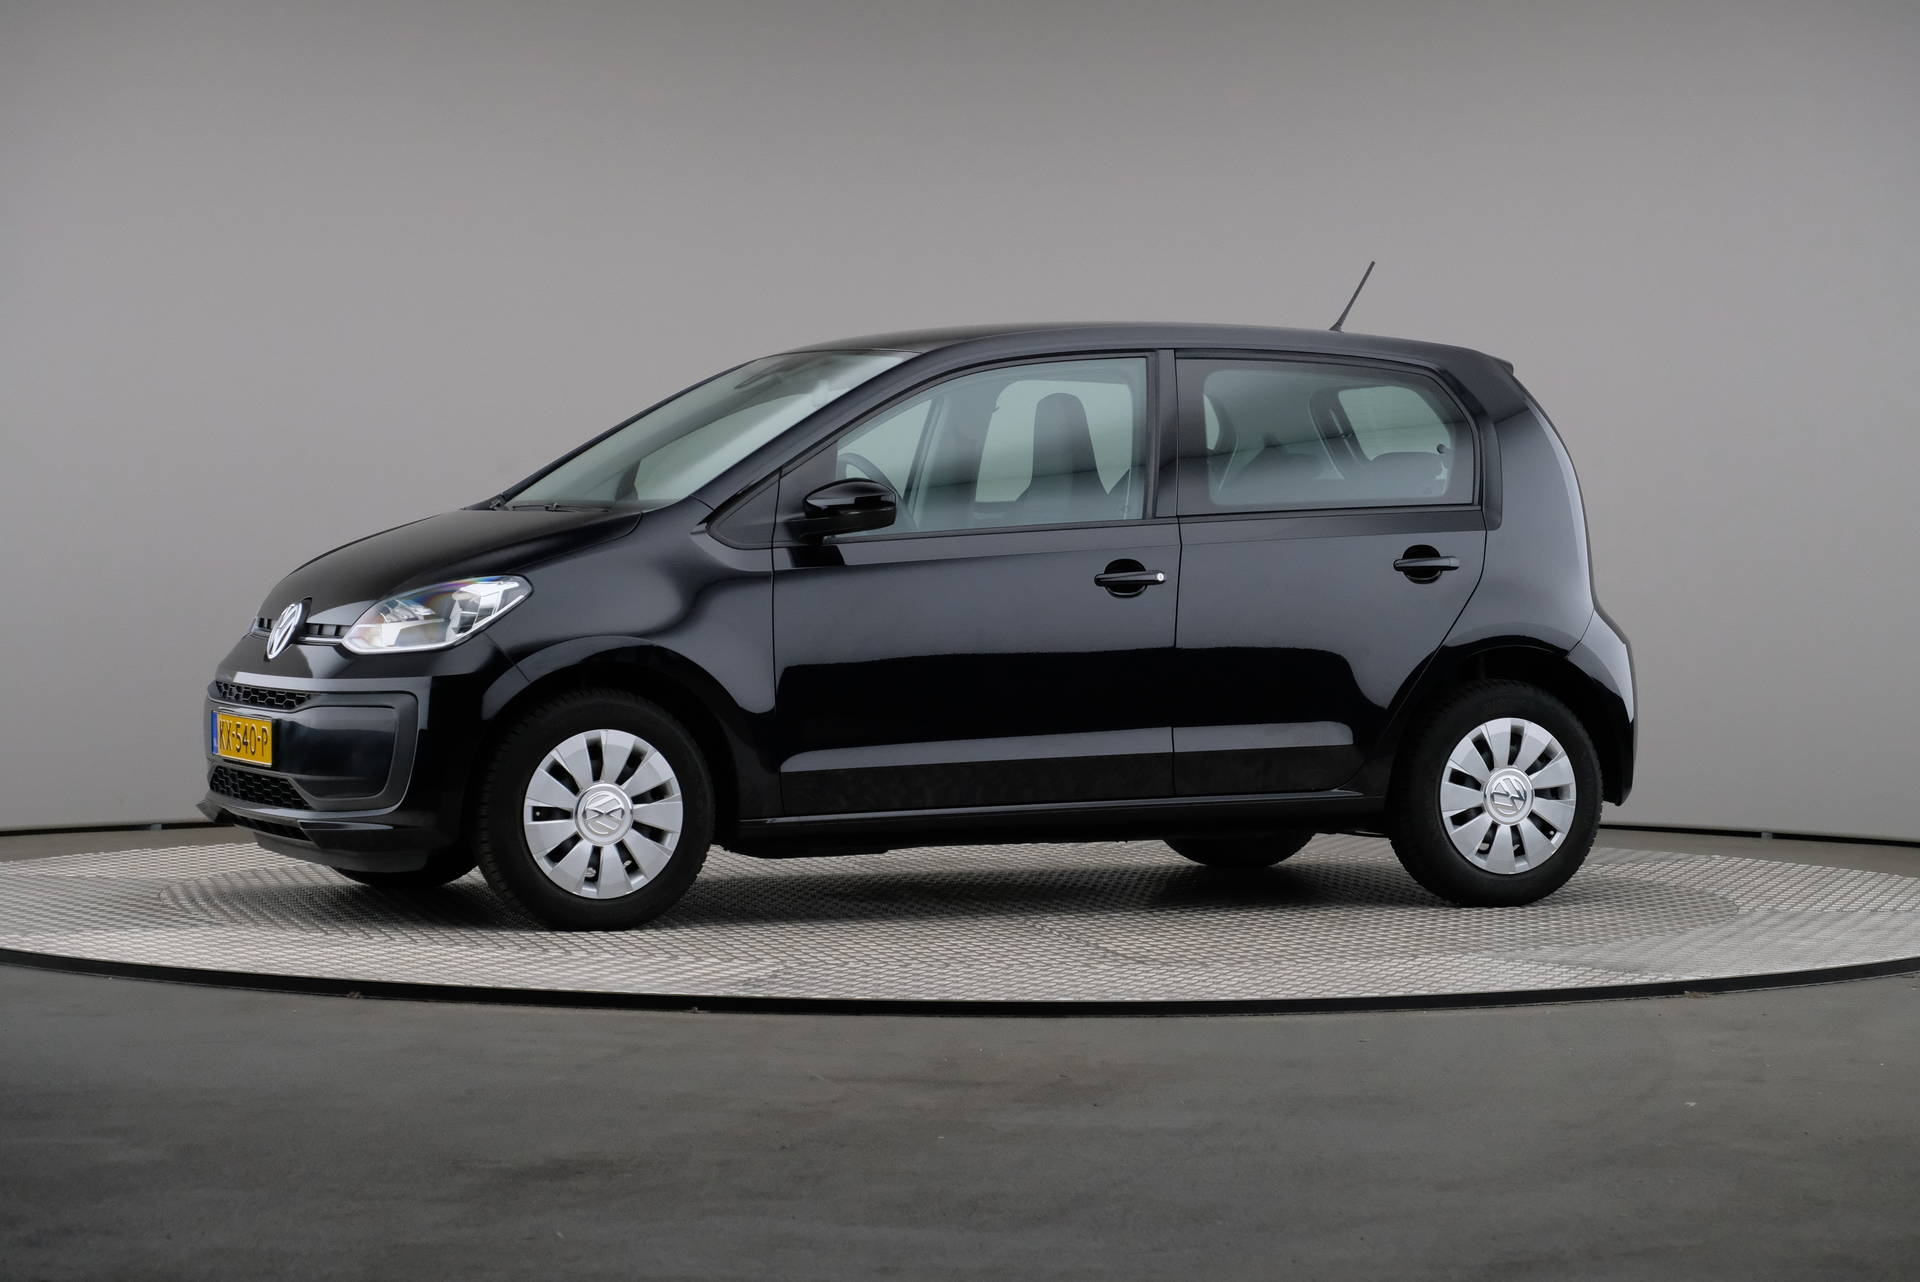 Volkswagen up! 1.0 44kW Move up! BlueMotion Technology, Airconditioning, 360-image3